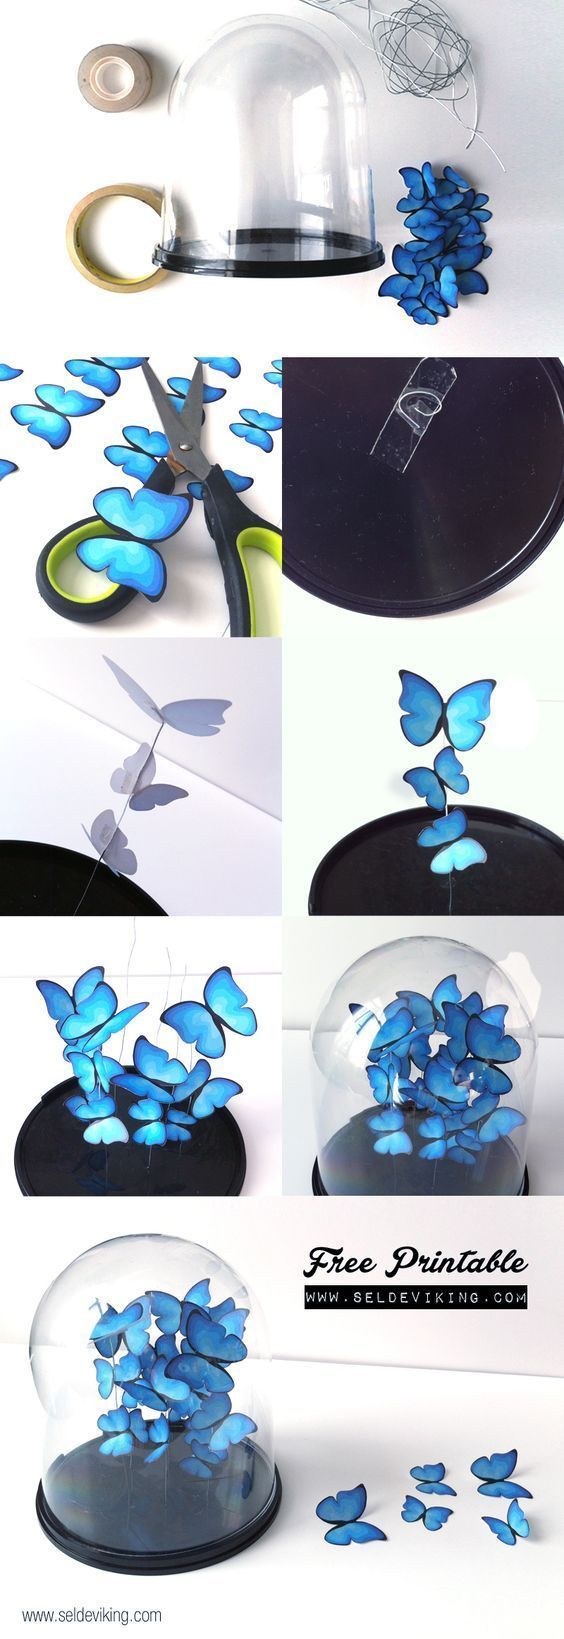 Turquoise Room Decor Ideas DIY Butterfly Decor Fun Aqua Decorating